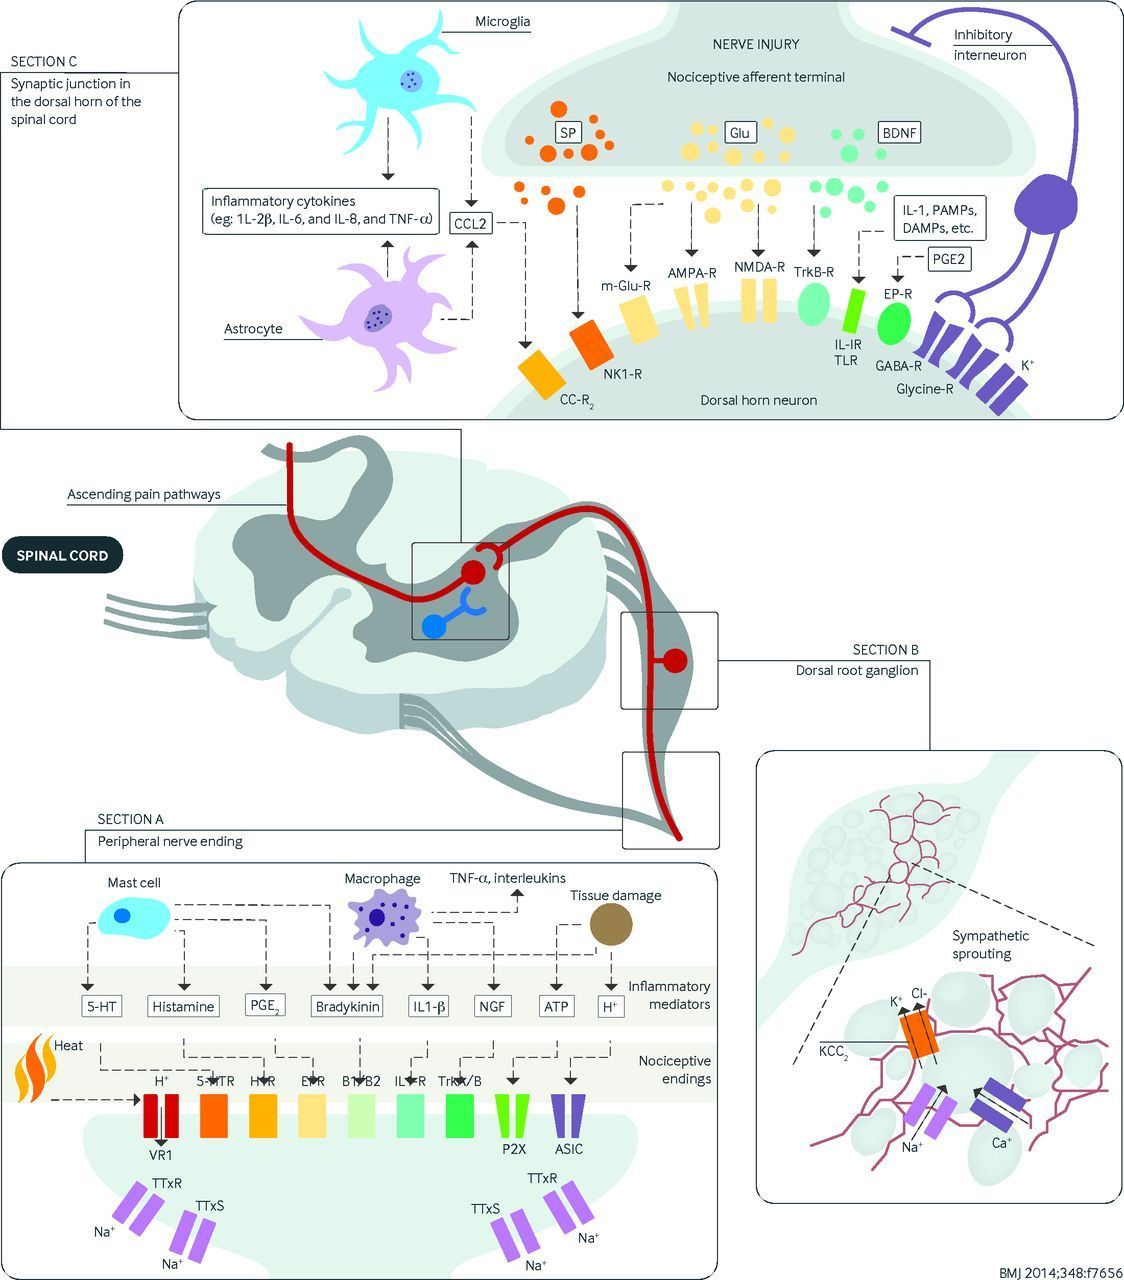 Diagram showing the various mechanisms involved in neuropathic diagram showing the various mechanisms involved in neuropathic pain at different sites in the nociceptive pathway pooptronica Choice Image